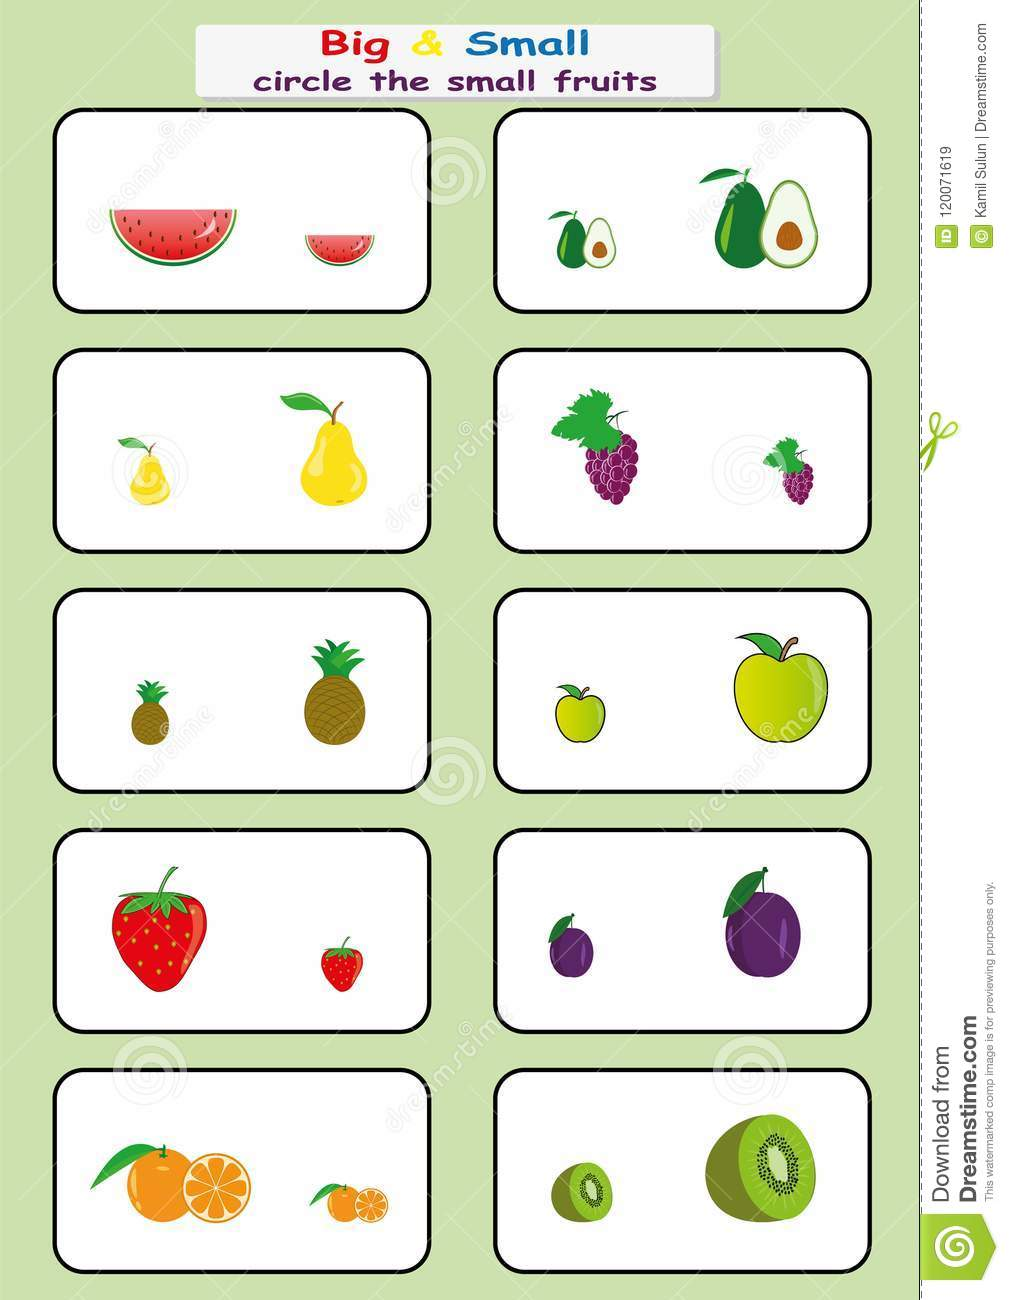 Circle The Small Fruits, Find Big Or Small Worksheet For Kids ...